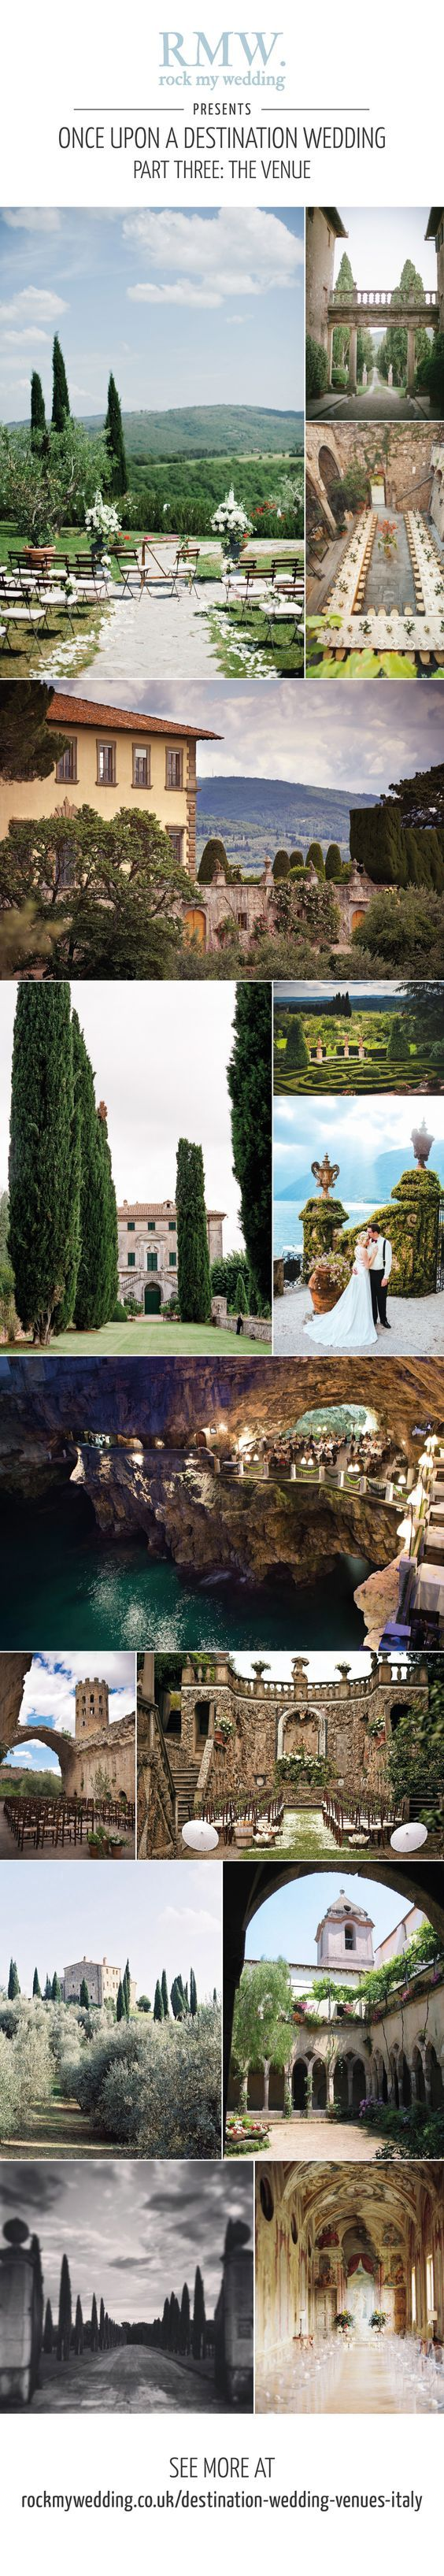 Your wedding bags for a grand getaway today s destination wedding - How To Find A Wedding Venue In Italy Wedding Planning Advice For A Destination Wedding